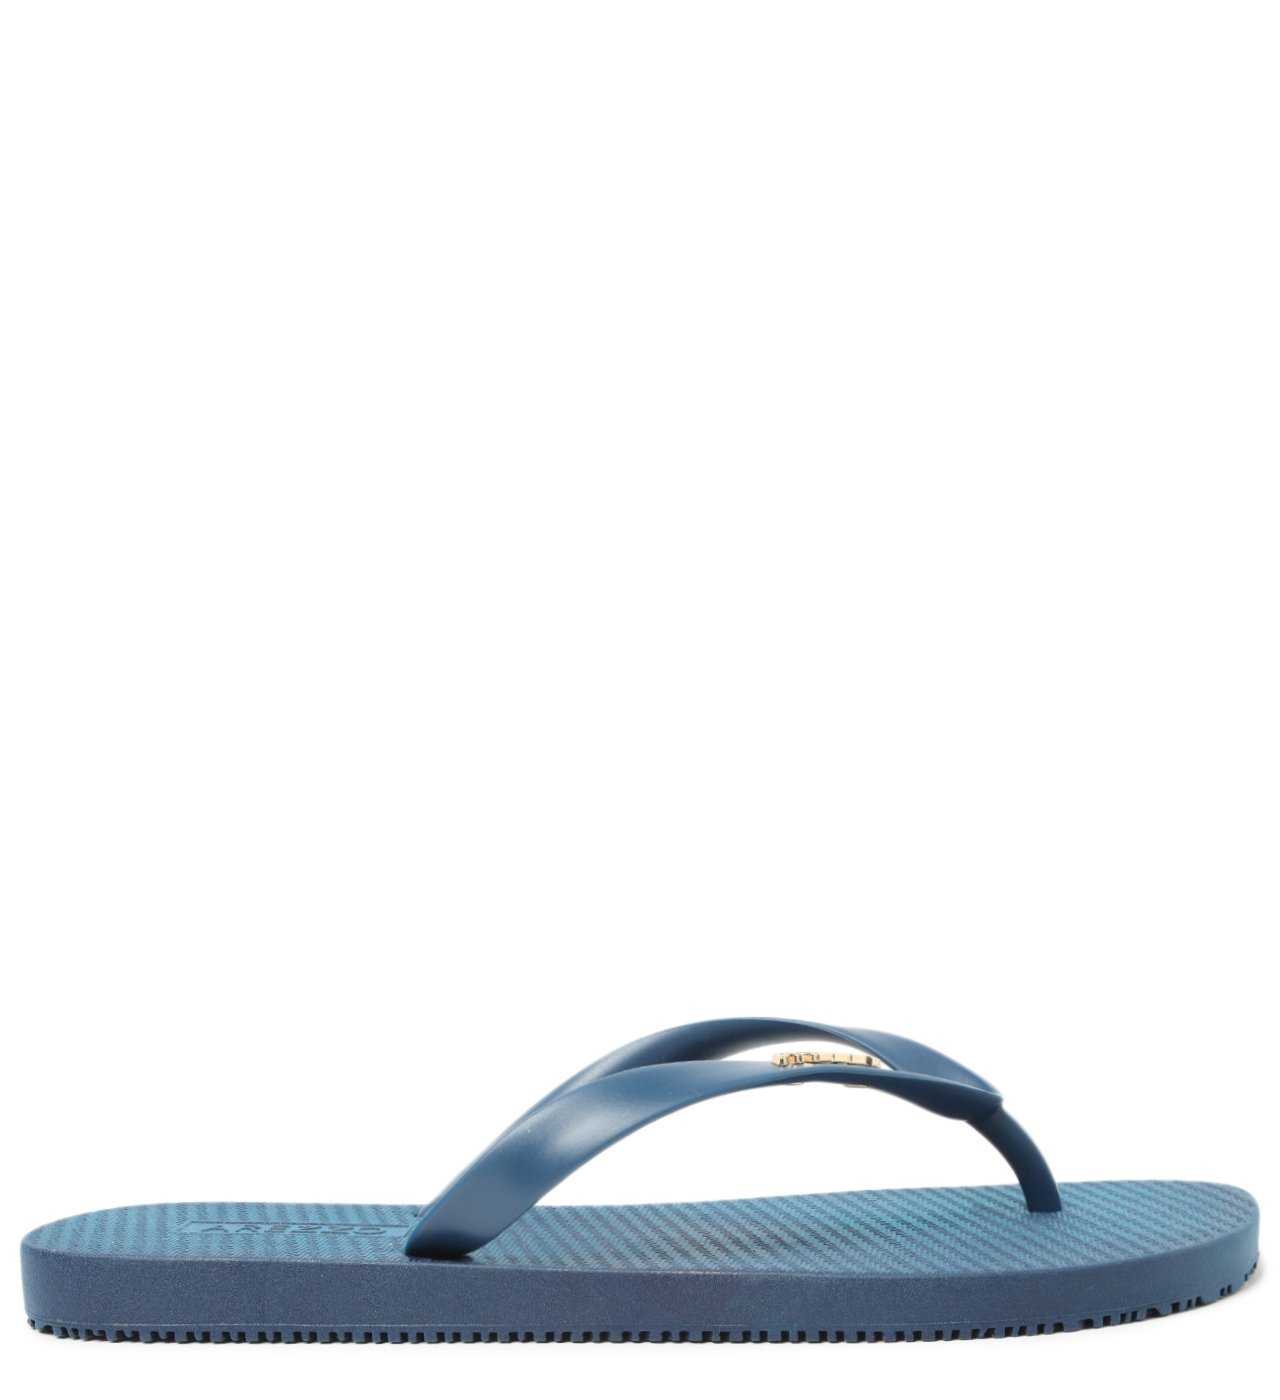 Kit Chinelo De Dedo Azul Brizza E Bag Transparente | Arezzo